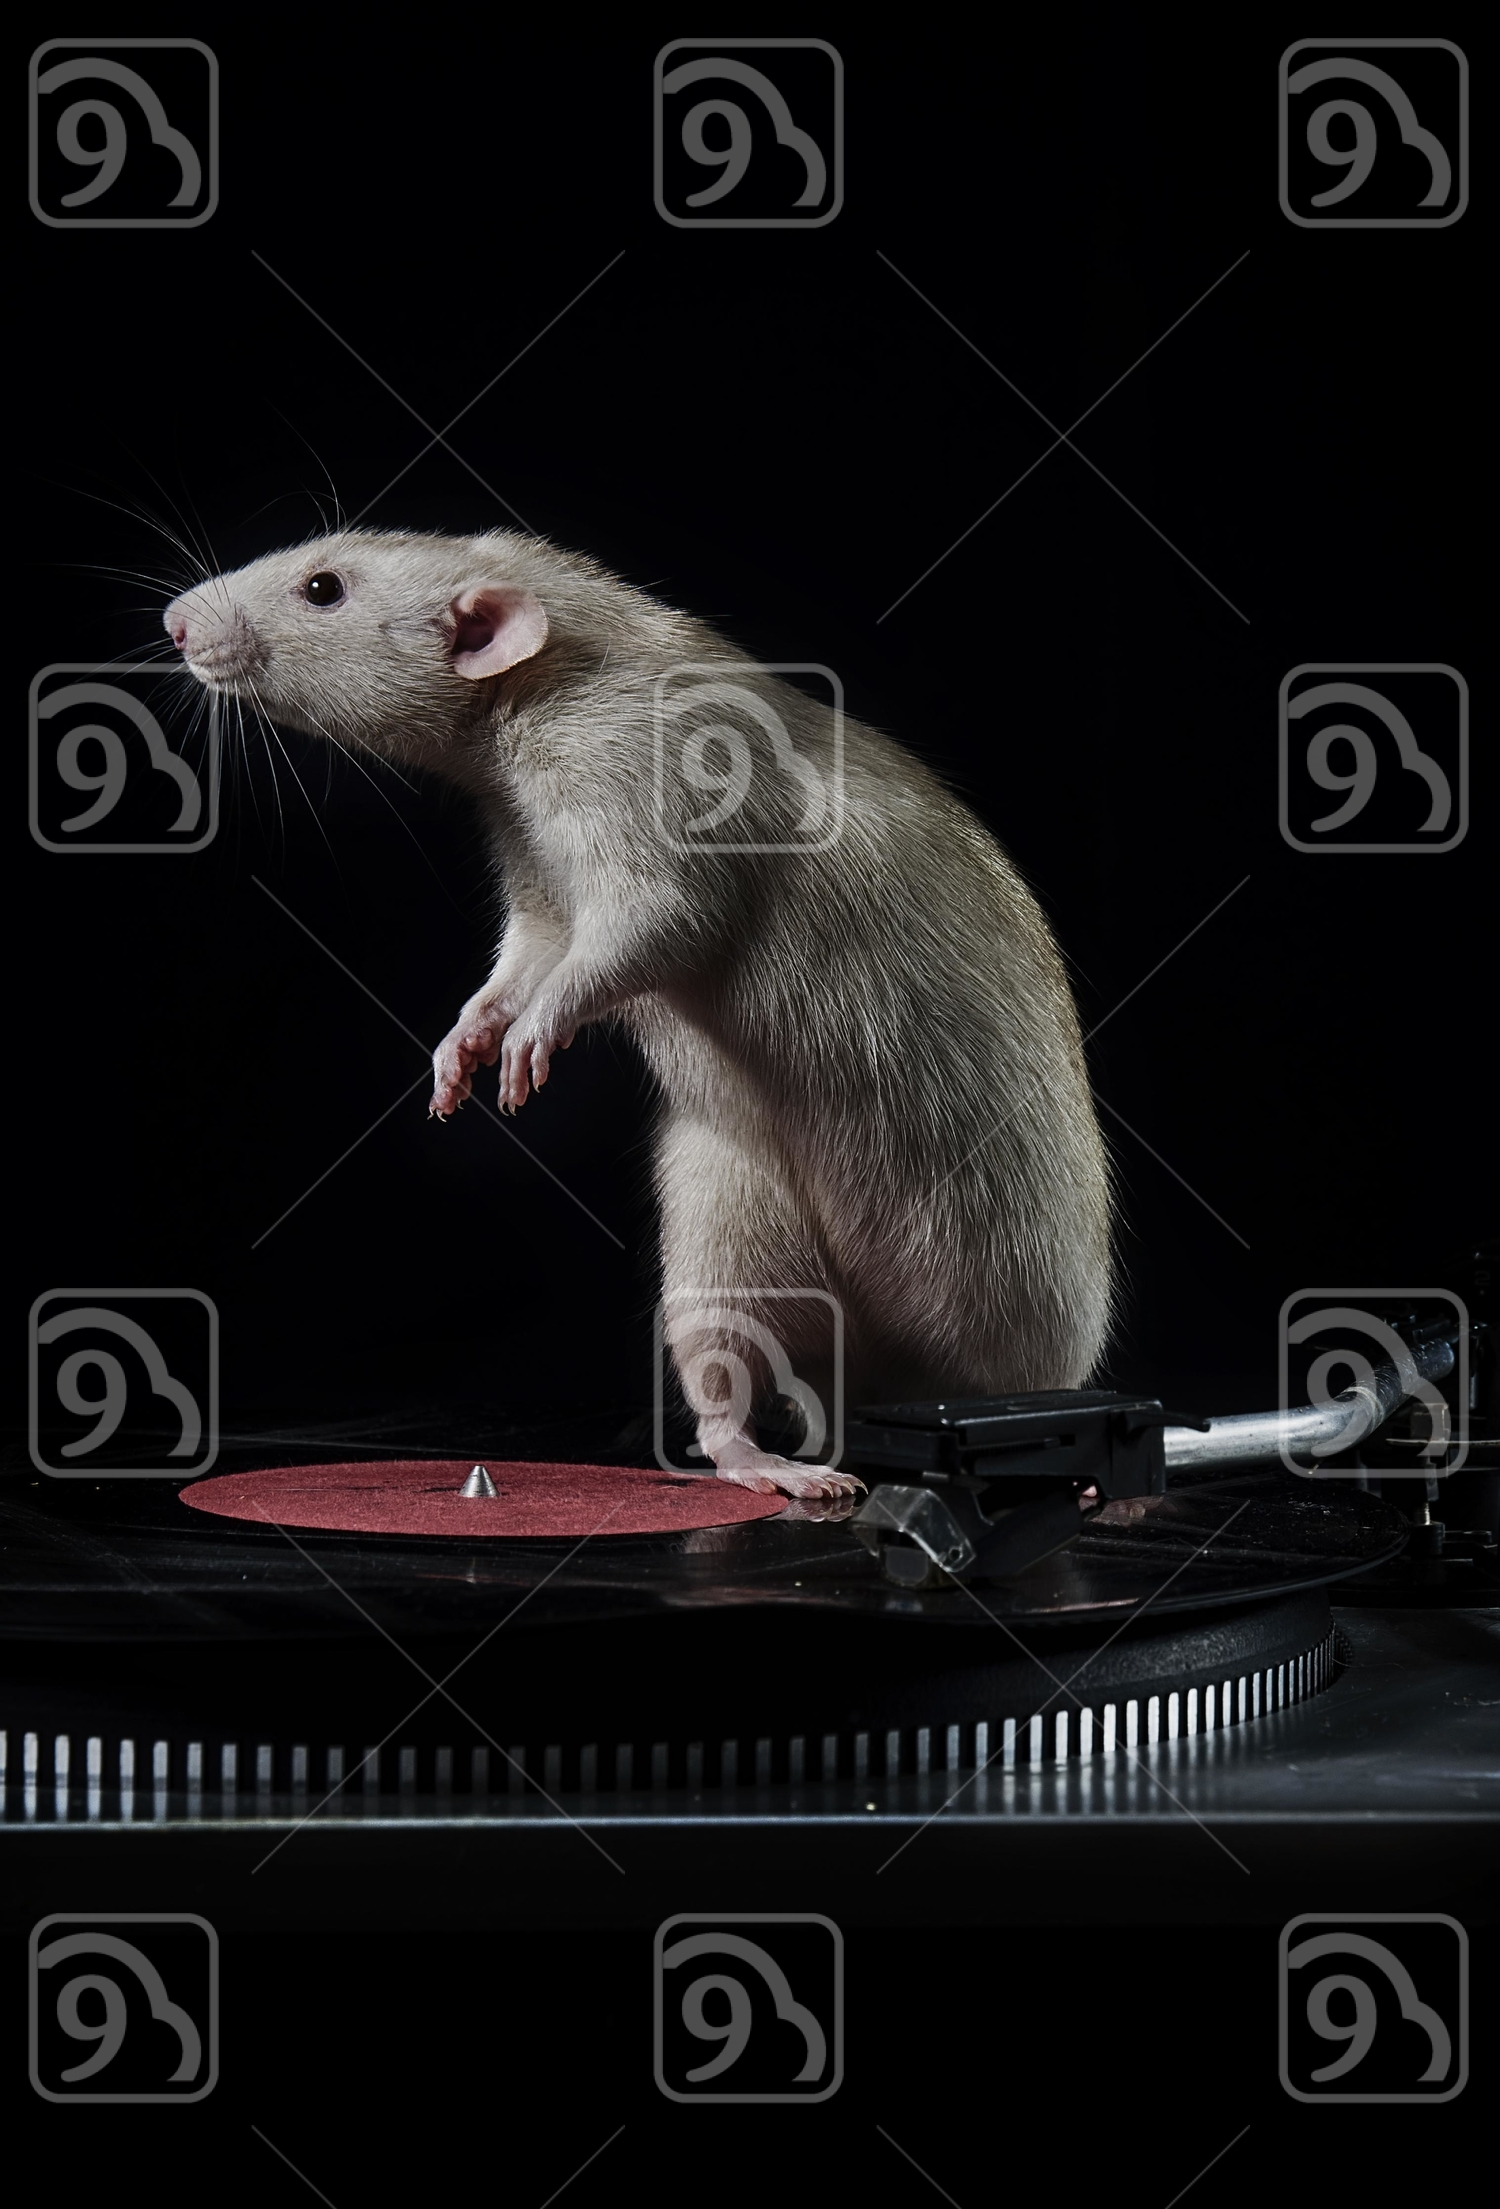 Rats and vinyl player.